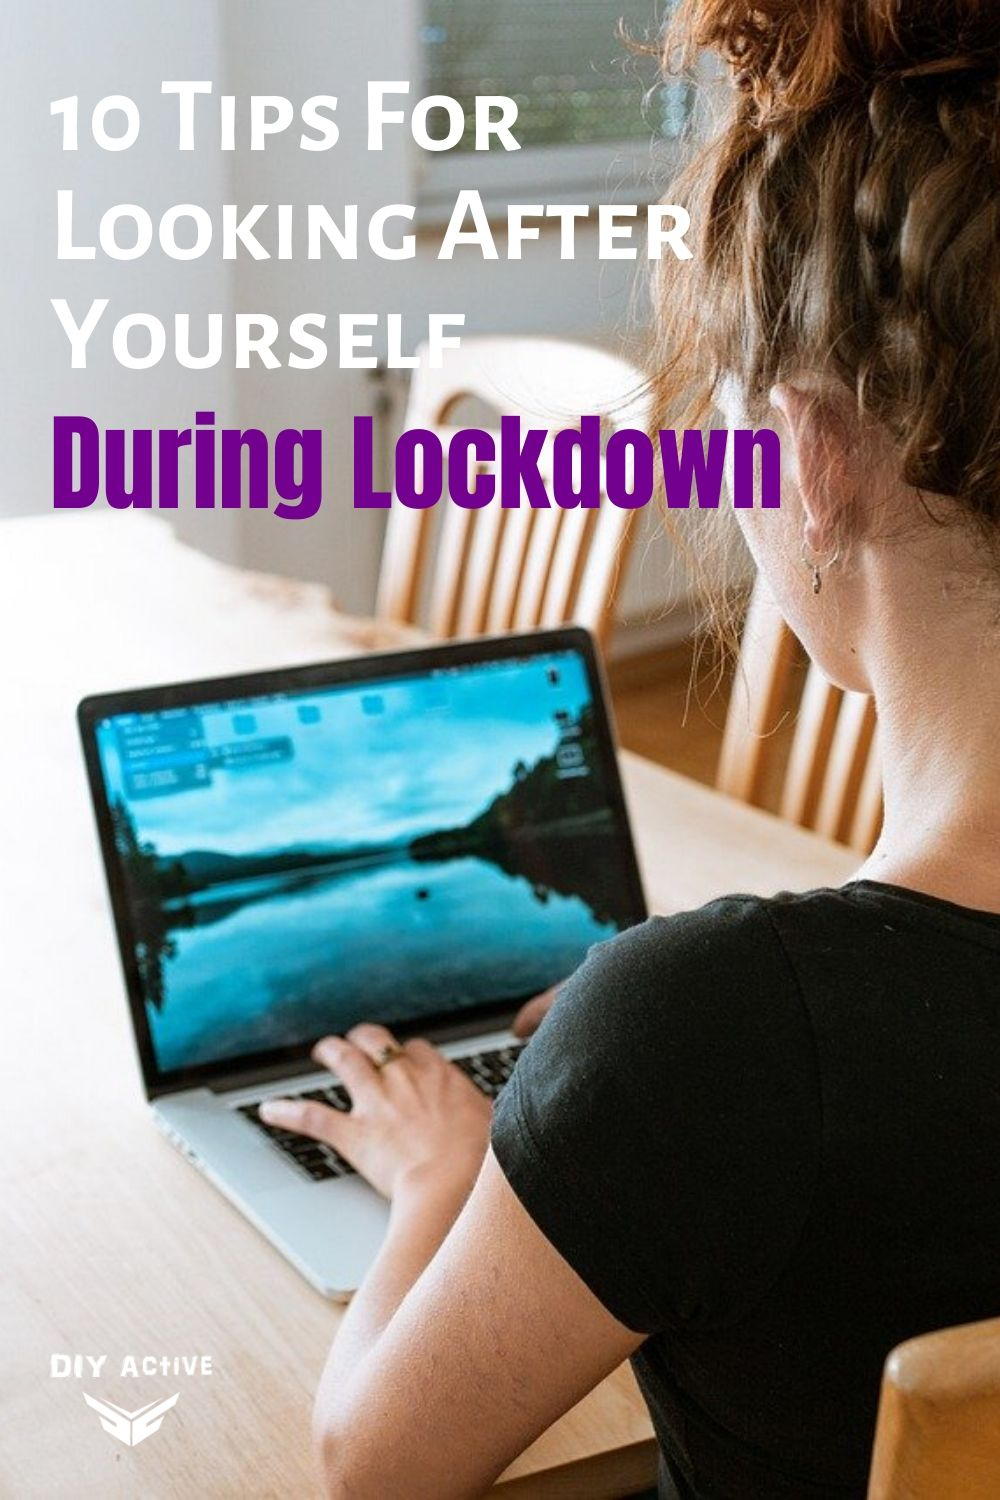 10 Tips For Looking After Yourself During Lockdown Starting Today